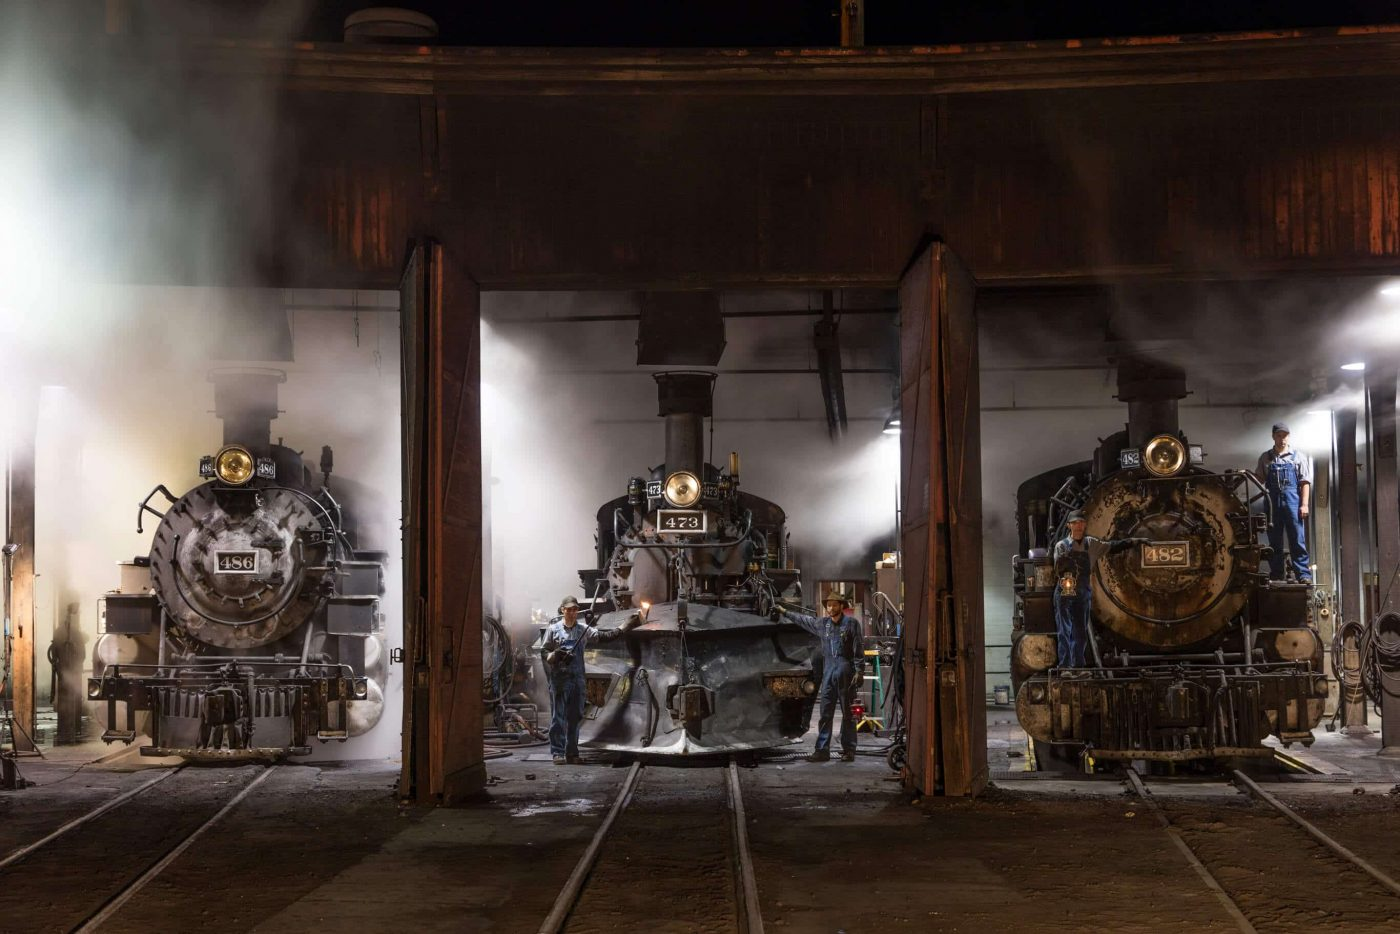 Steam locomotives in the roundhouse of the Durango & Silverton Narrow Gauge Scenic Railroad in Durango, Colordo.